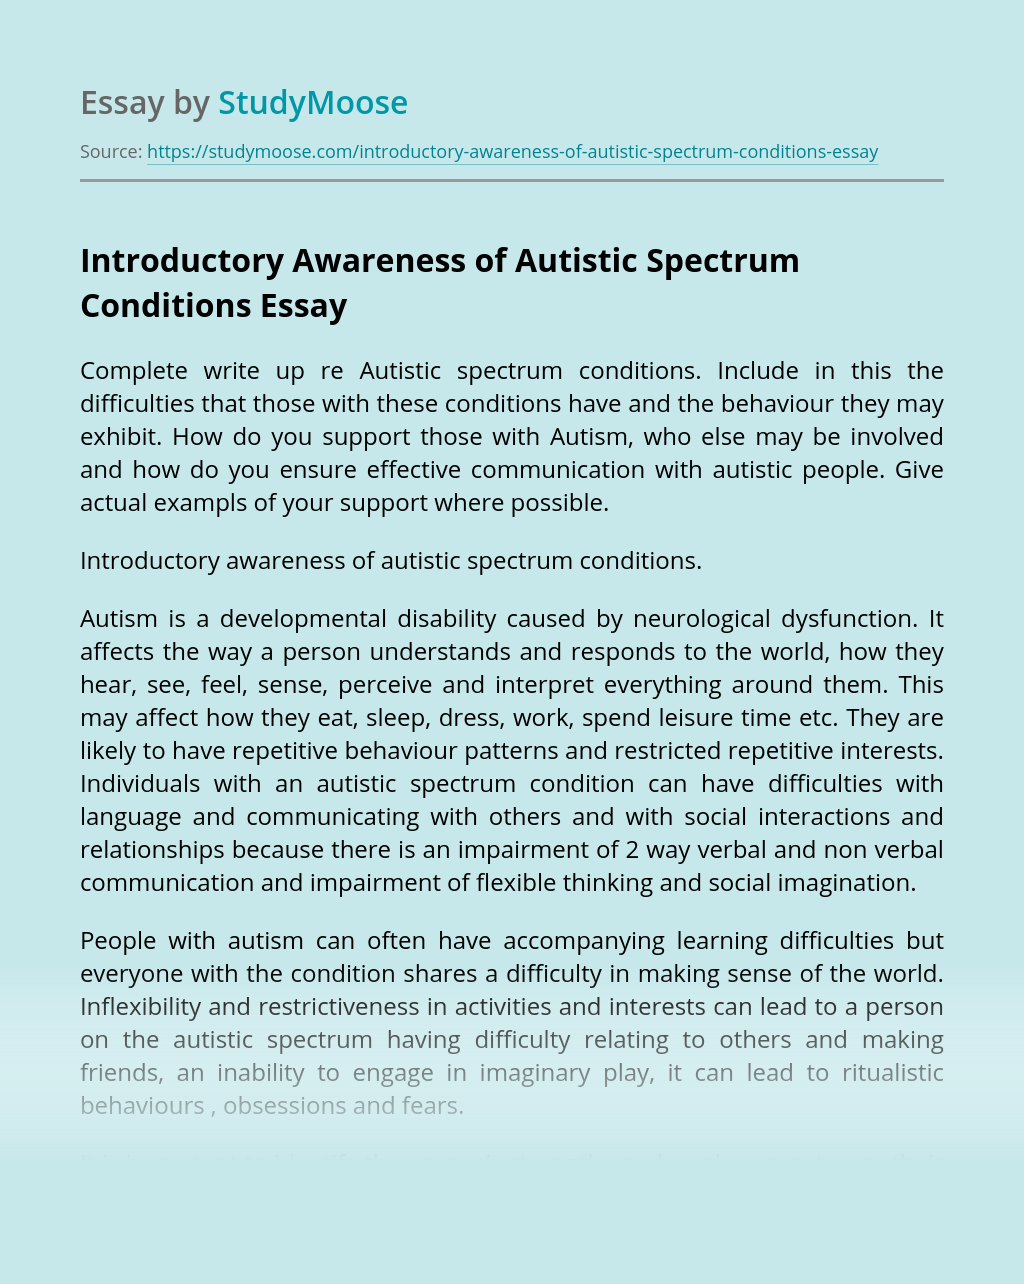 Introductory Awareness of Autistic Spectrum Conditions